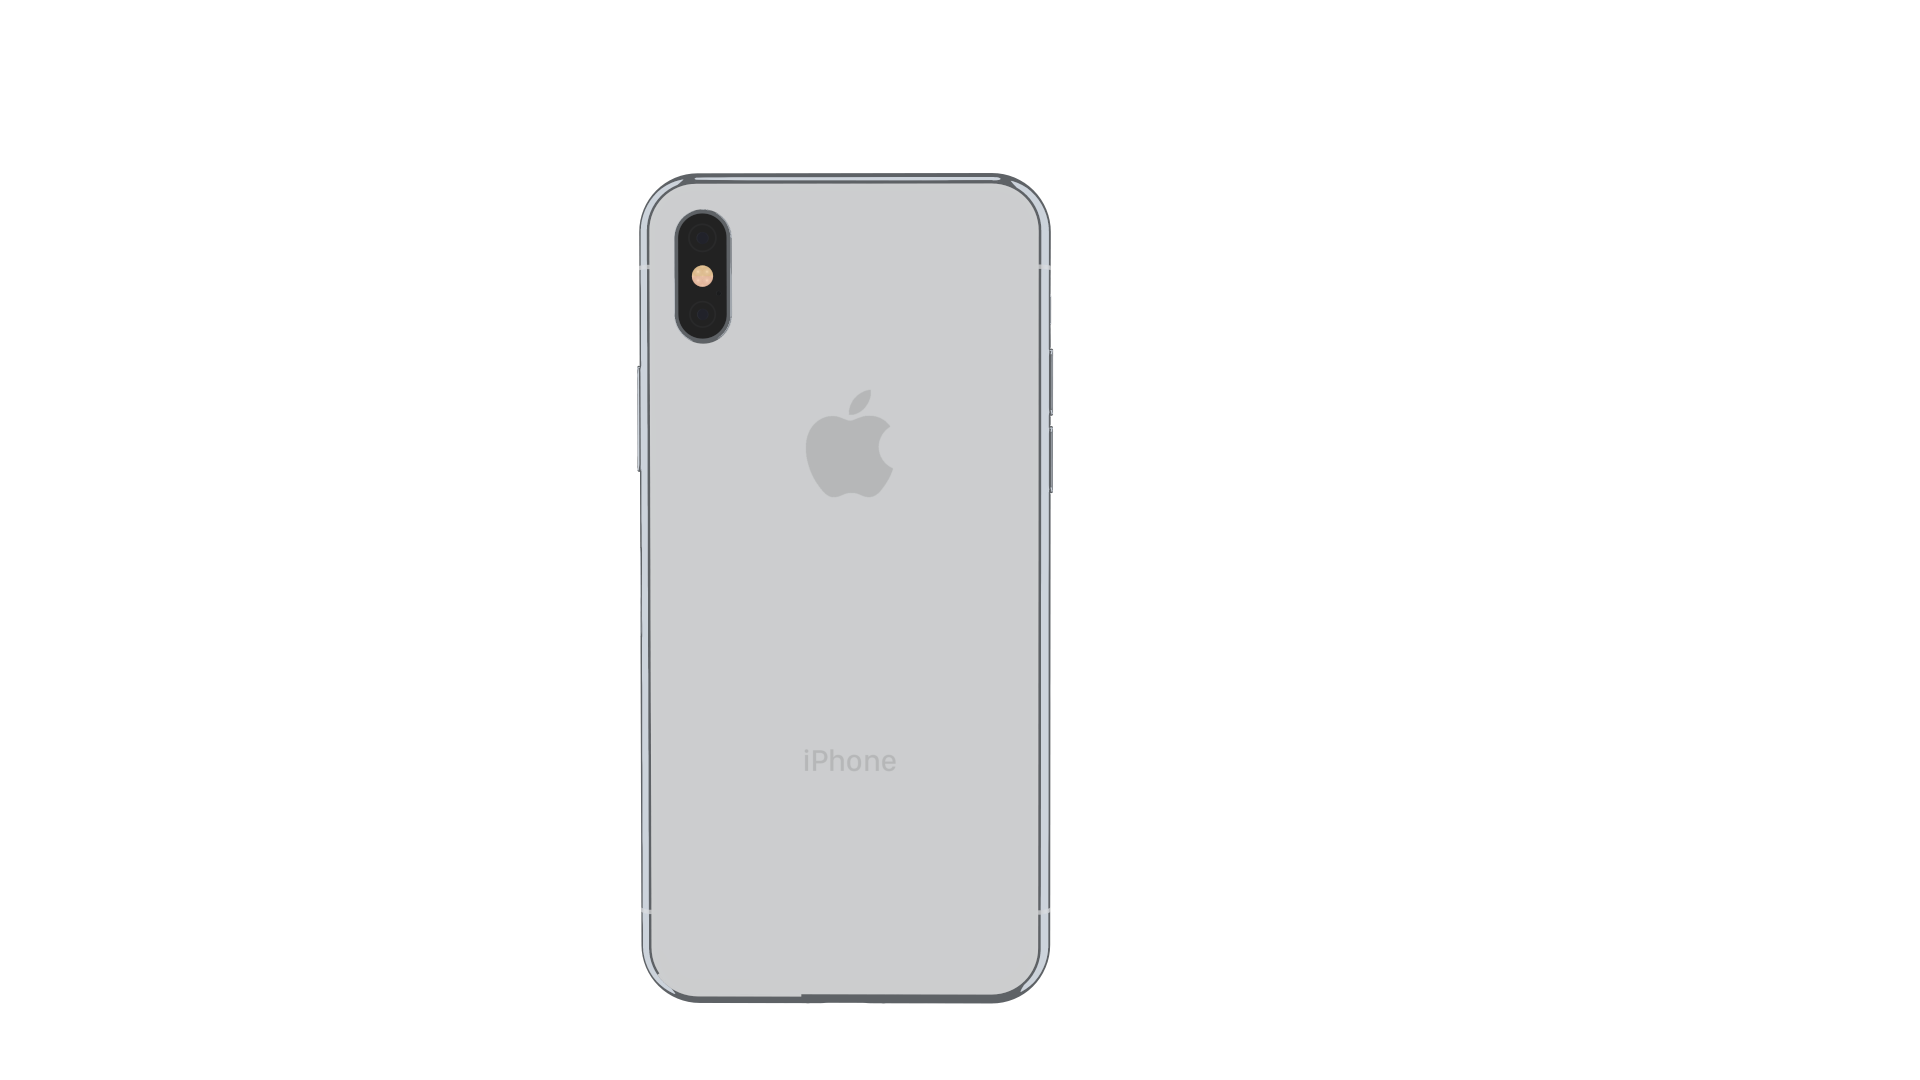 iPhone X back view